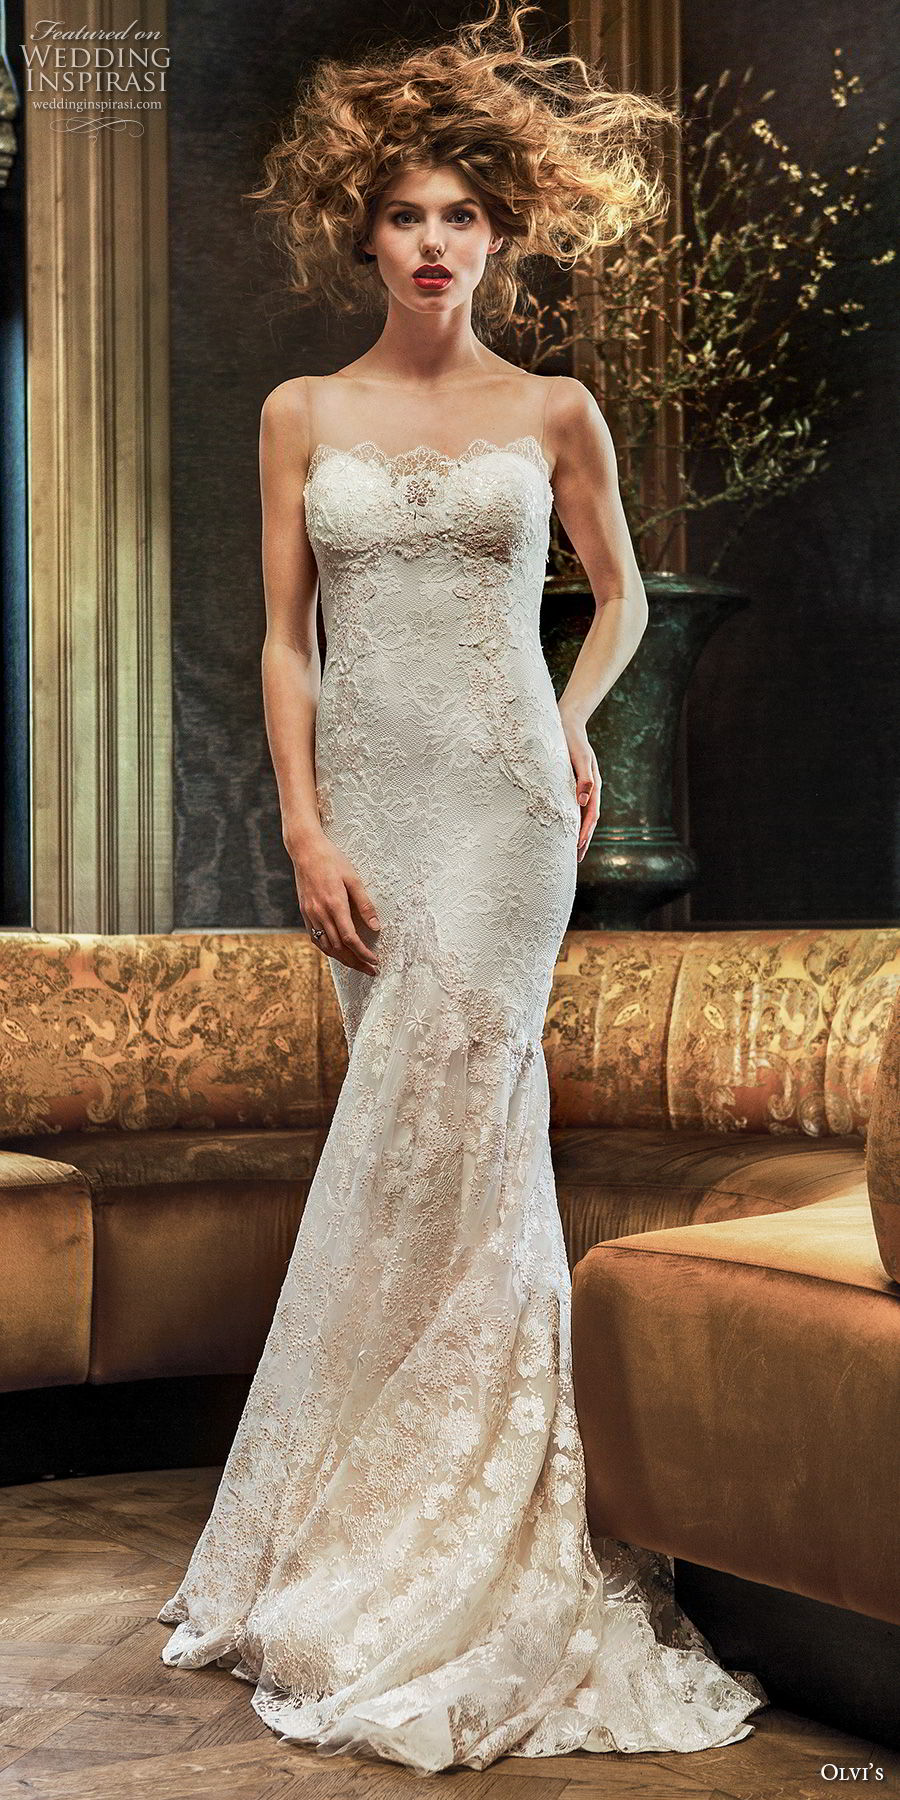 olvi 2019 bridal sleeveless illusion strapless sweetheart neckline full embellishment elegant fit and flare wedding dress v back short train (15) mv